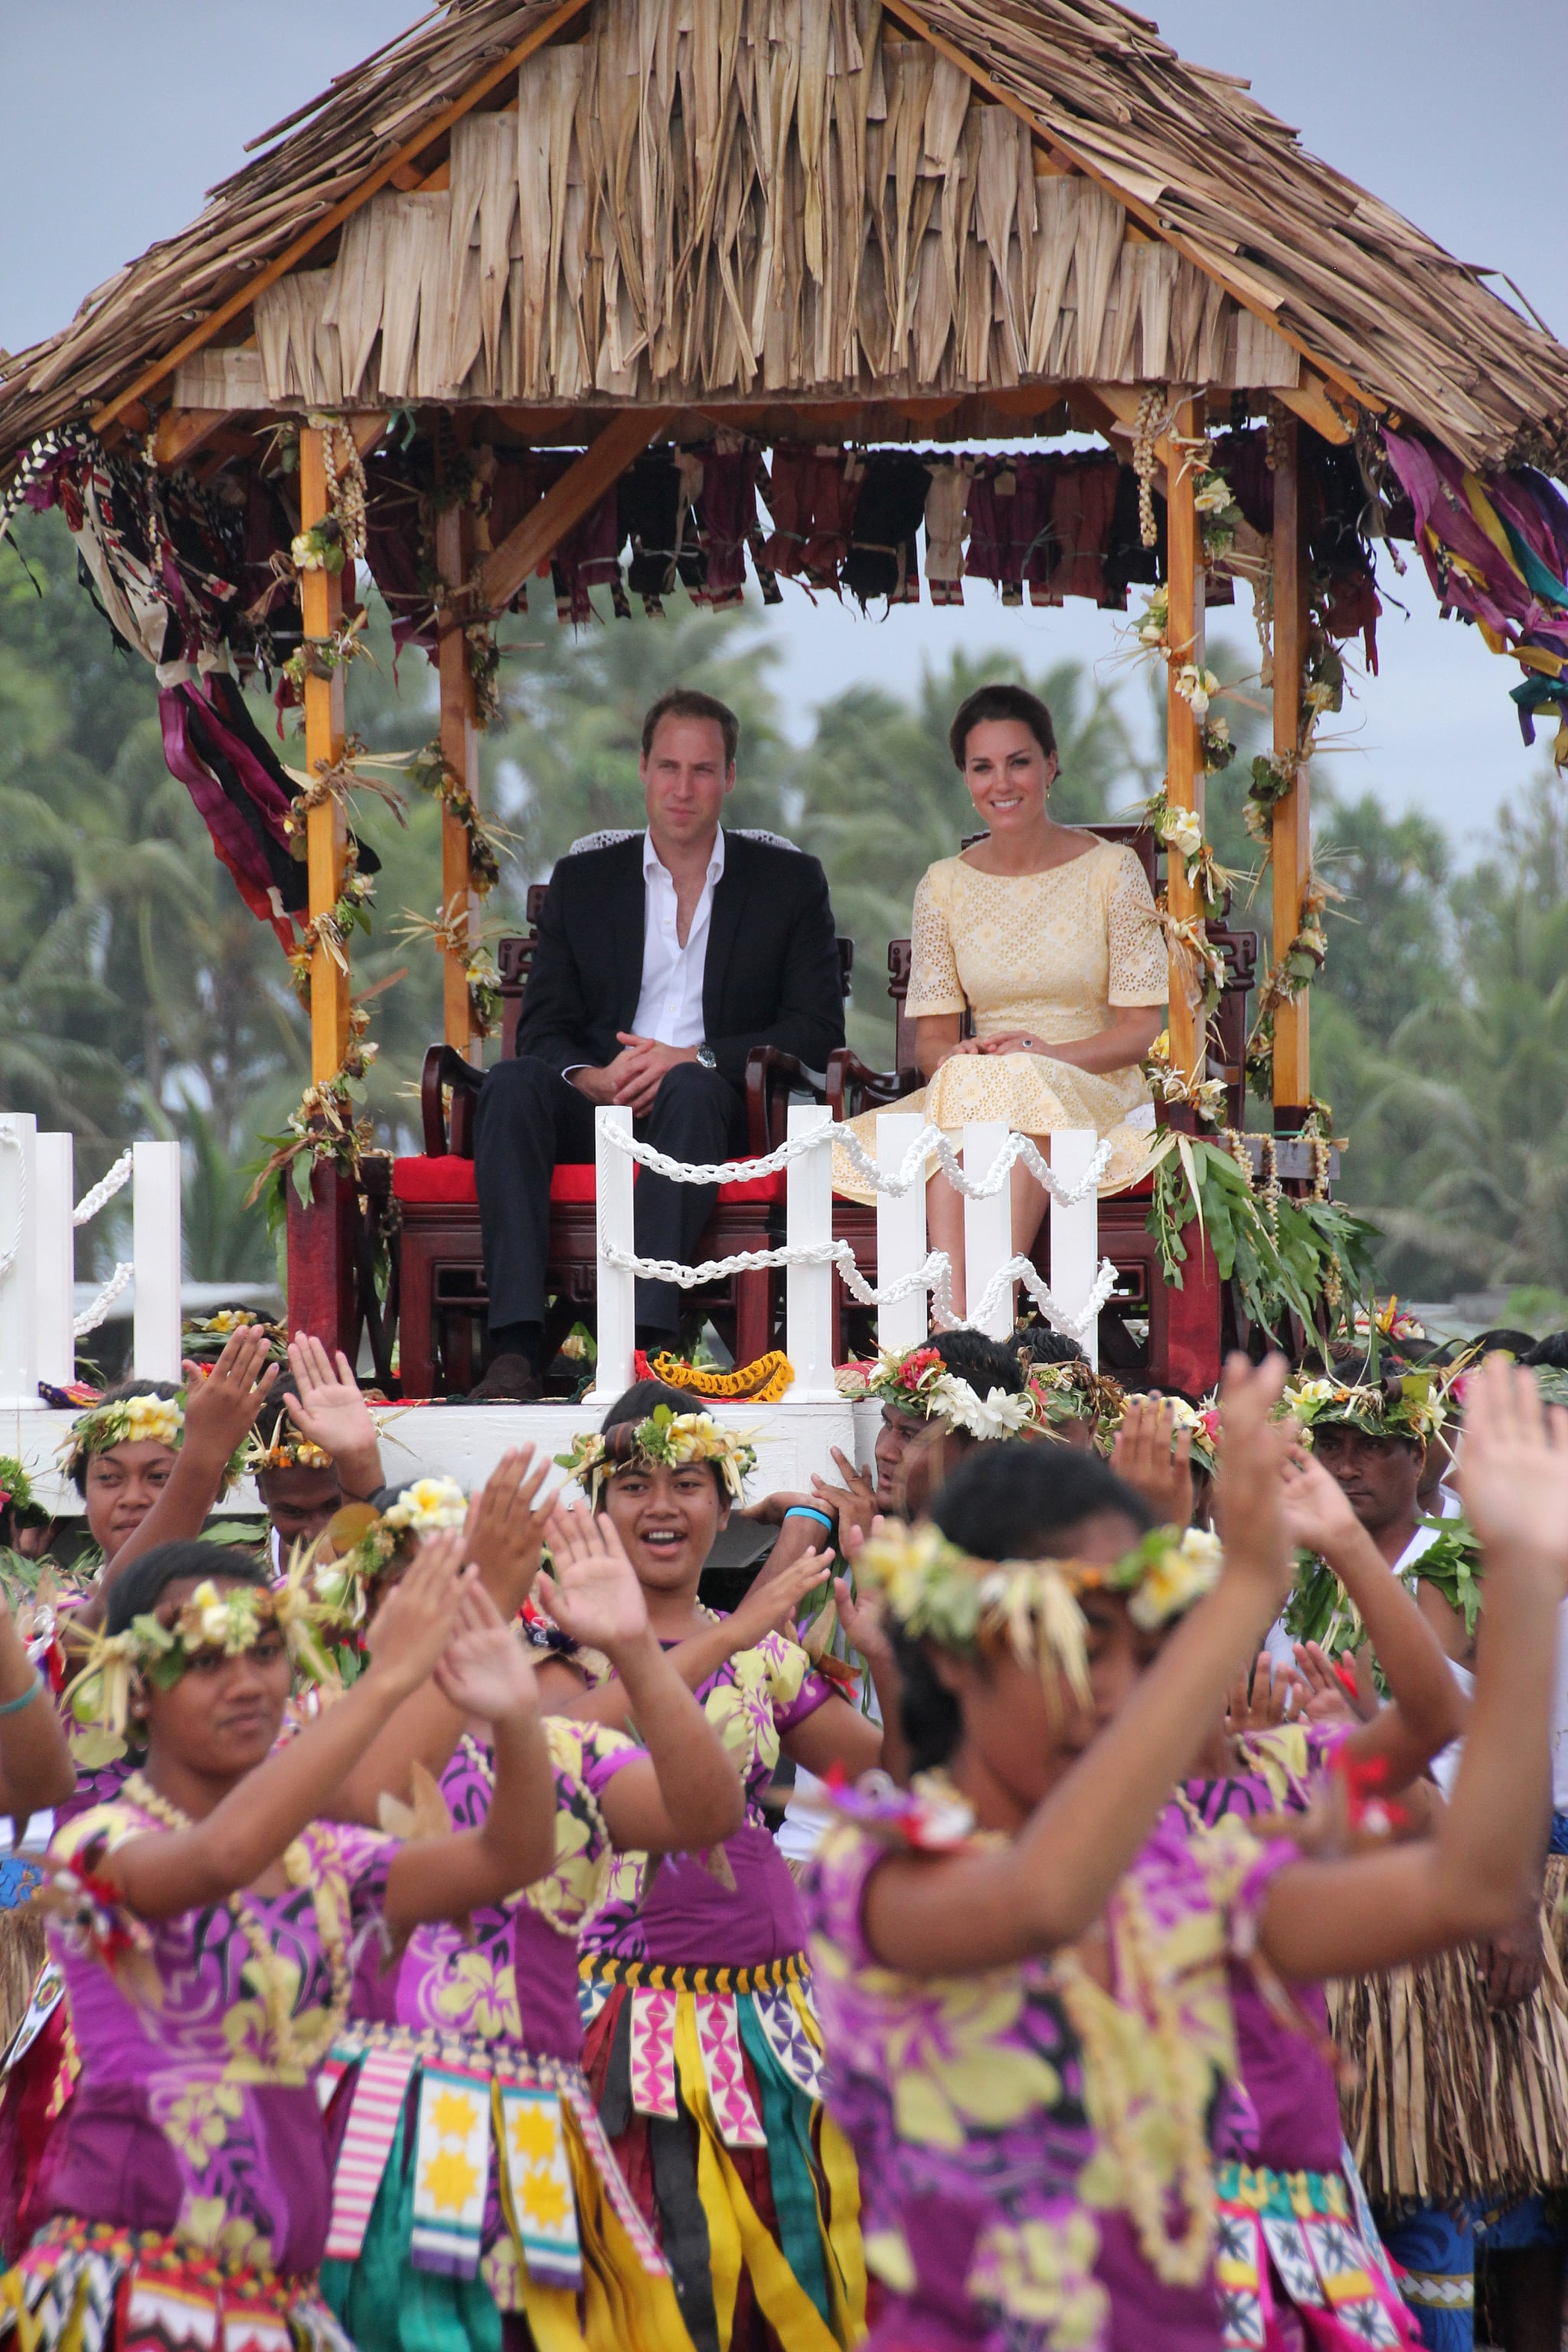 Prince William and Kate arrived in Tuvalu in 2012 by elevated hut.